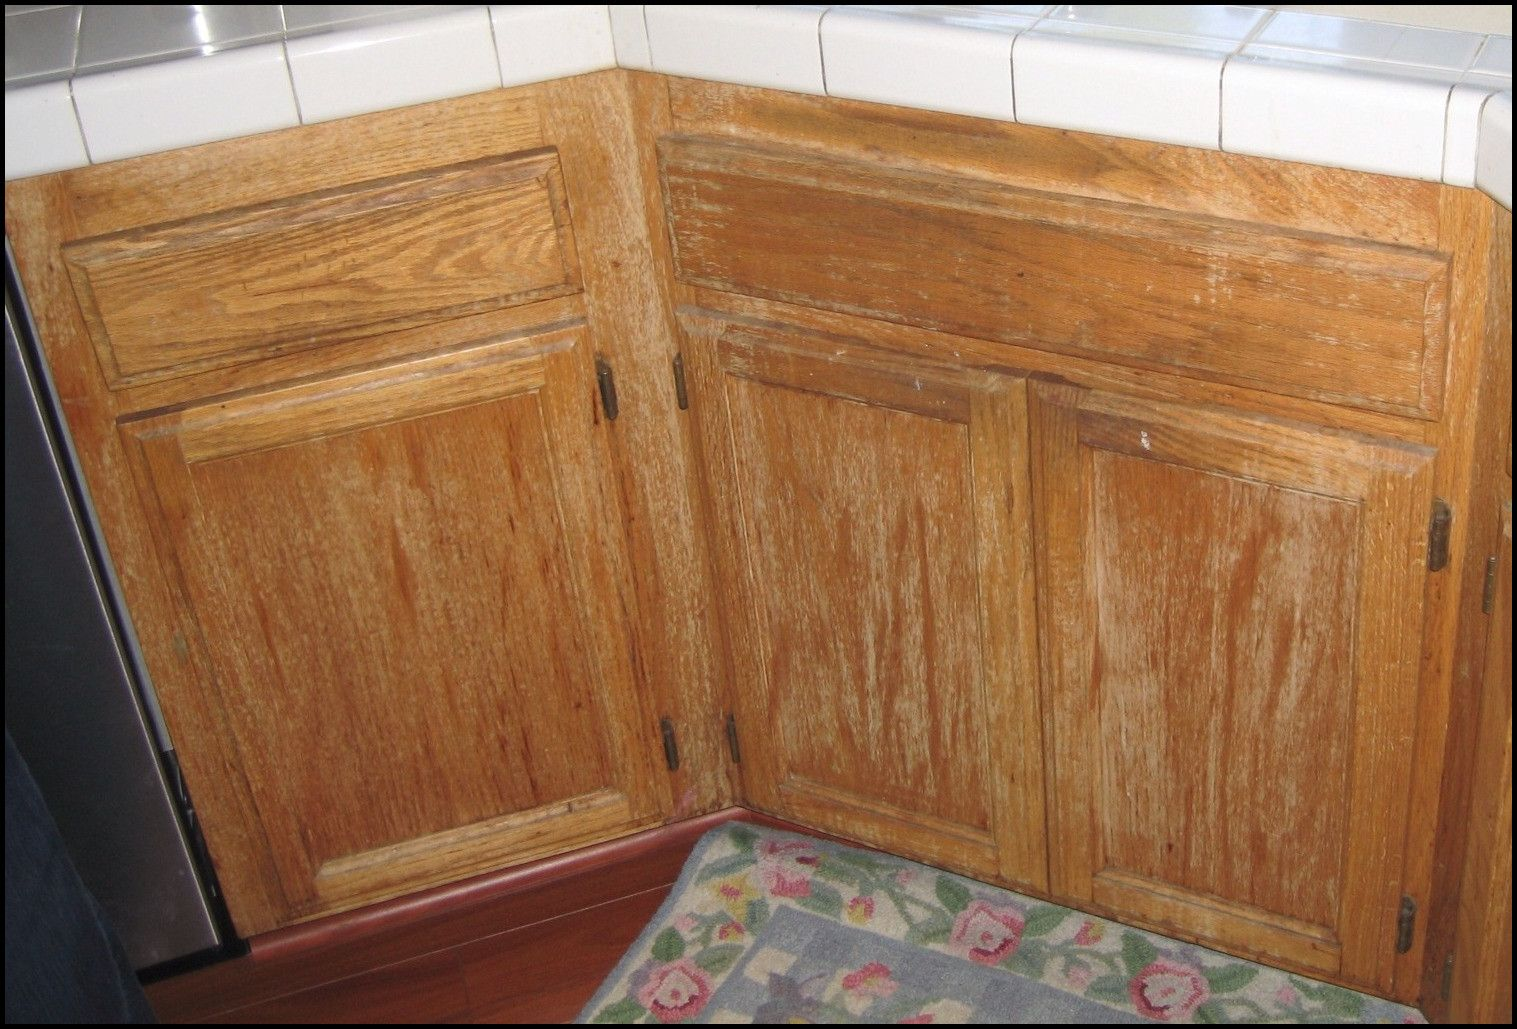 2019 Damaged Kitchen Cabinets For Sale Chalkboard Ideas For Kitchen Check More At Http W Kitchen Cabinets For Sale Kitchen Cabinets Repair Kitchen Cabinets